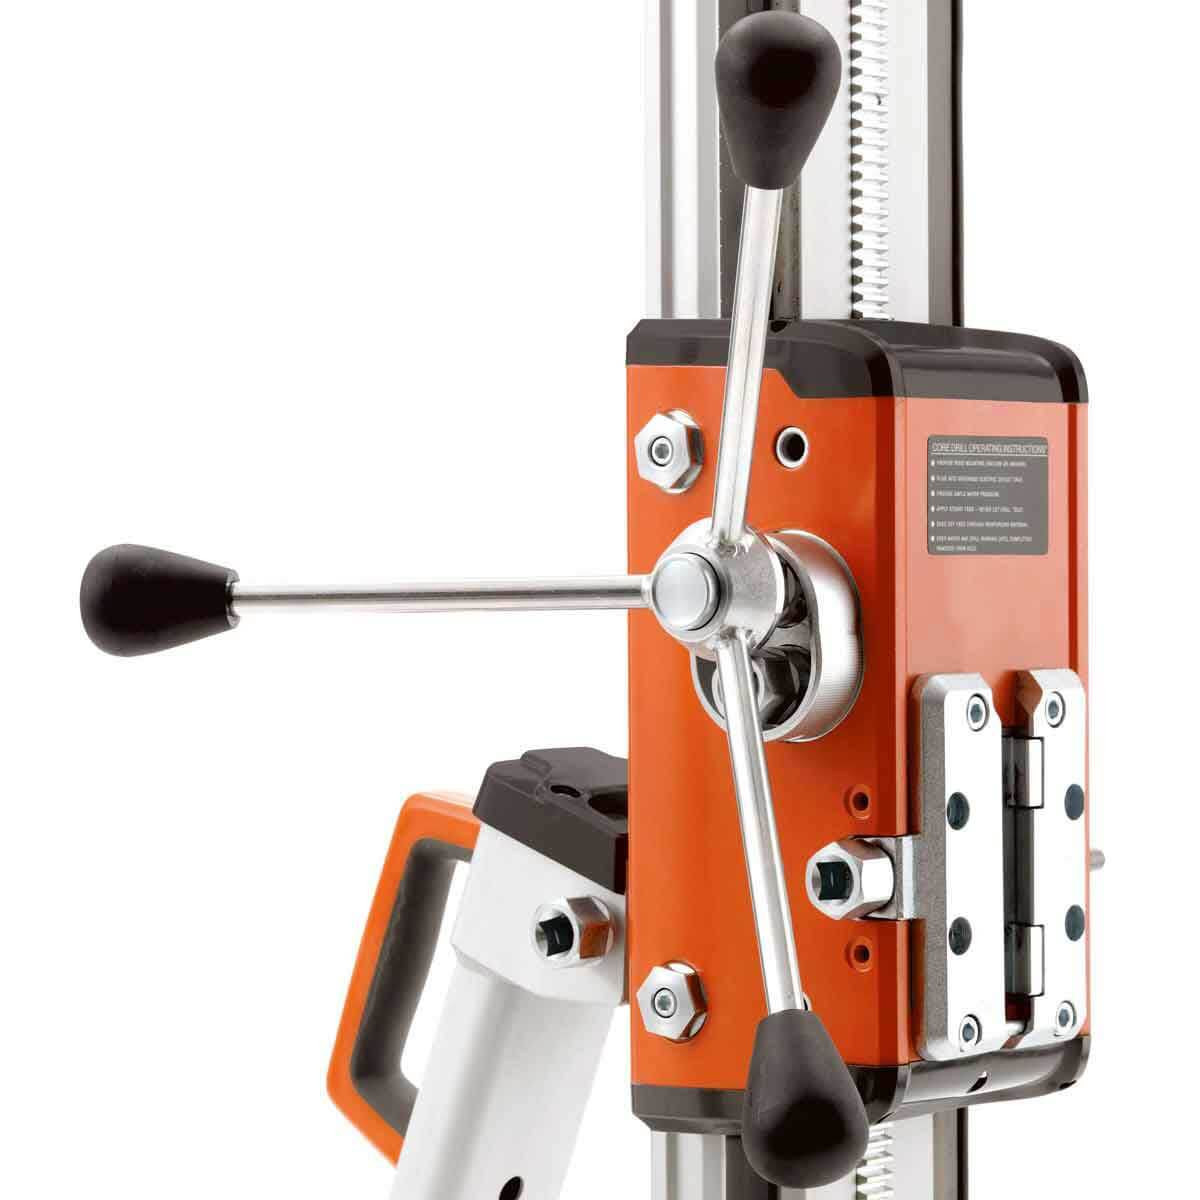 Core Drill Stand carriage motor